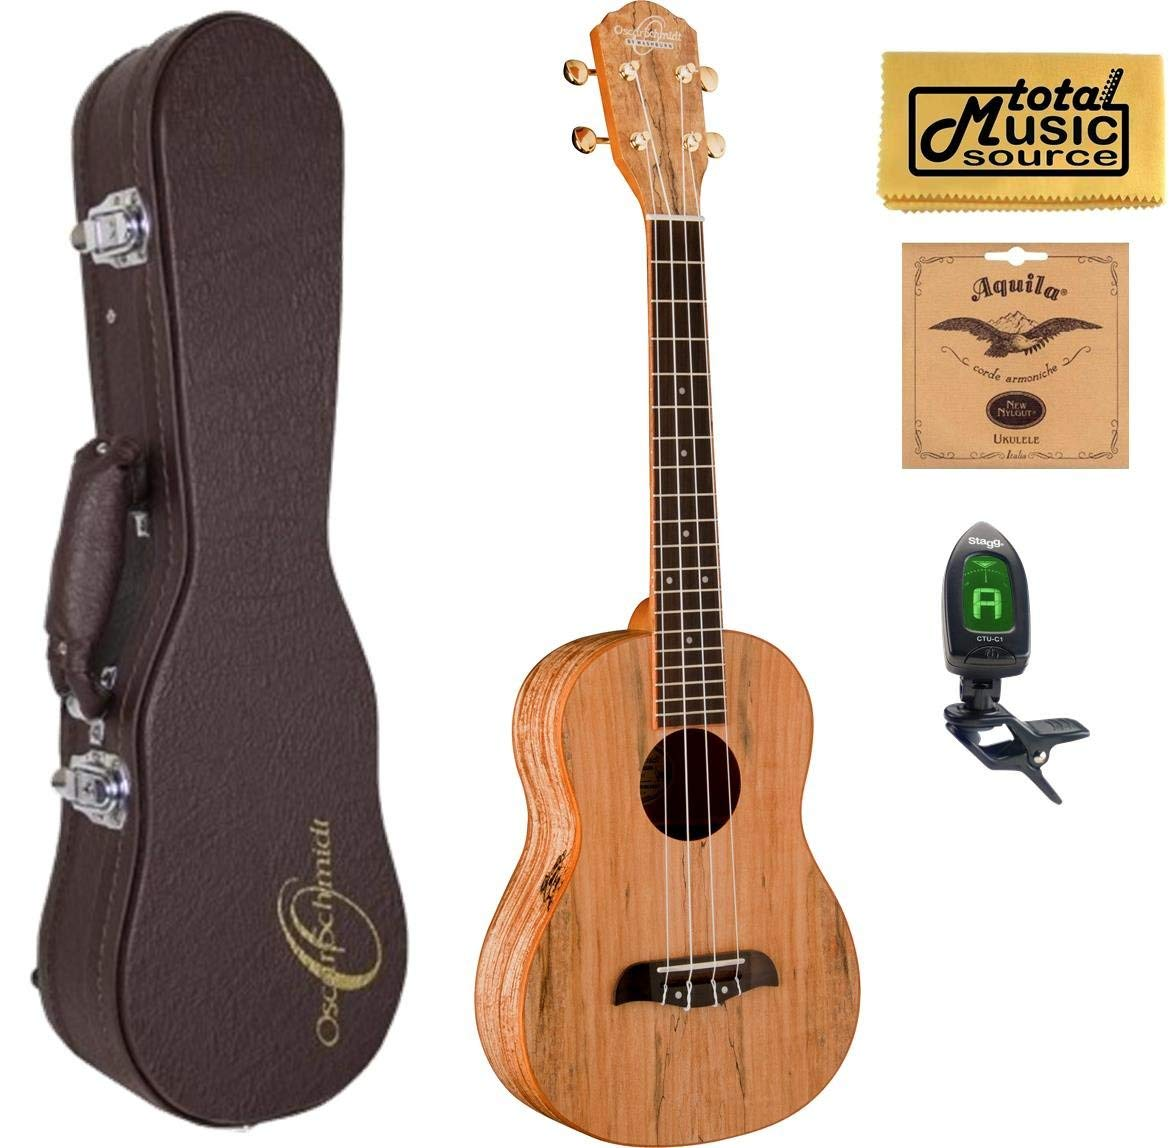 Oscar Schmidt OU8T Tenor Ukulele, Spalted Maple Top, Back and Sides,w/Hard Case,Tuner,Strings & PC, OU8T HCASE